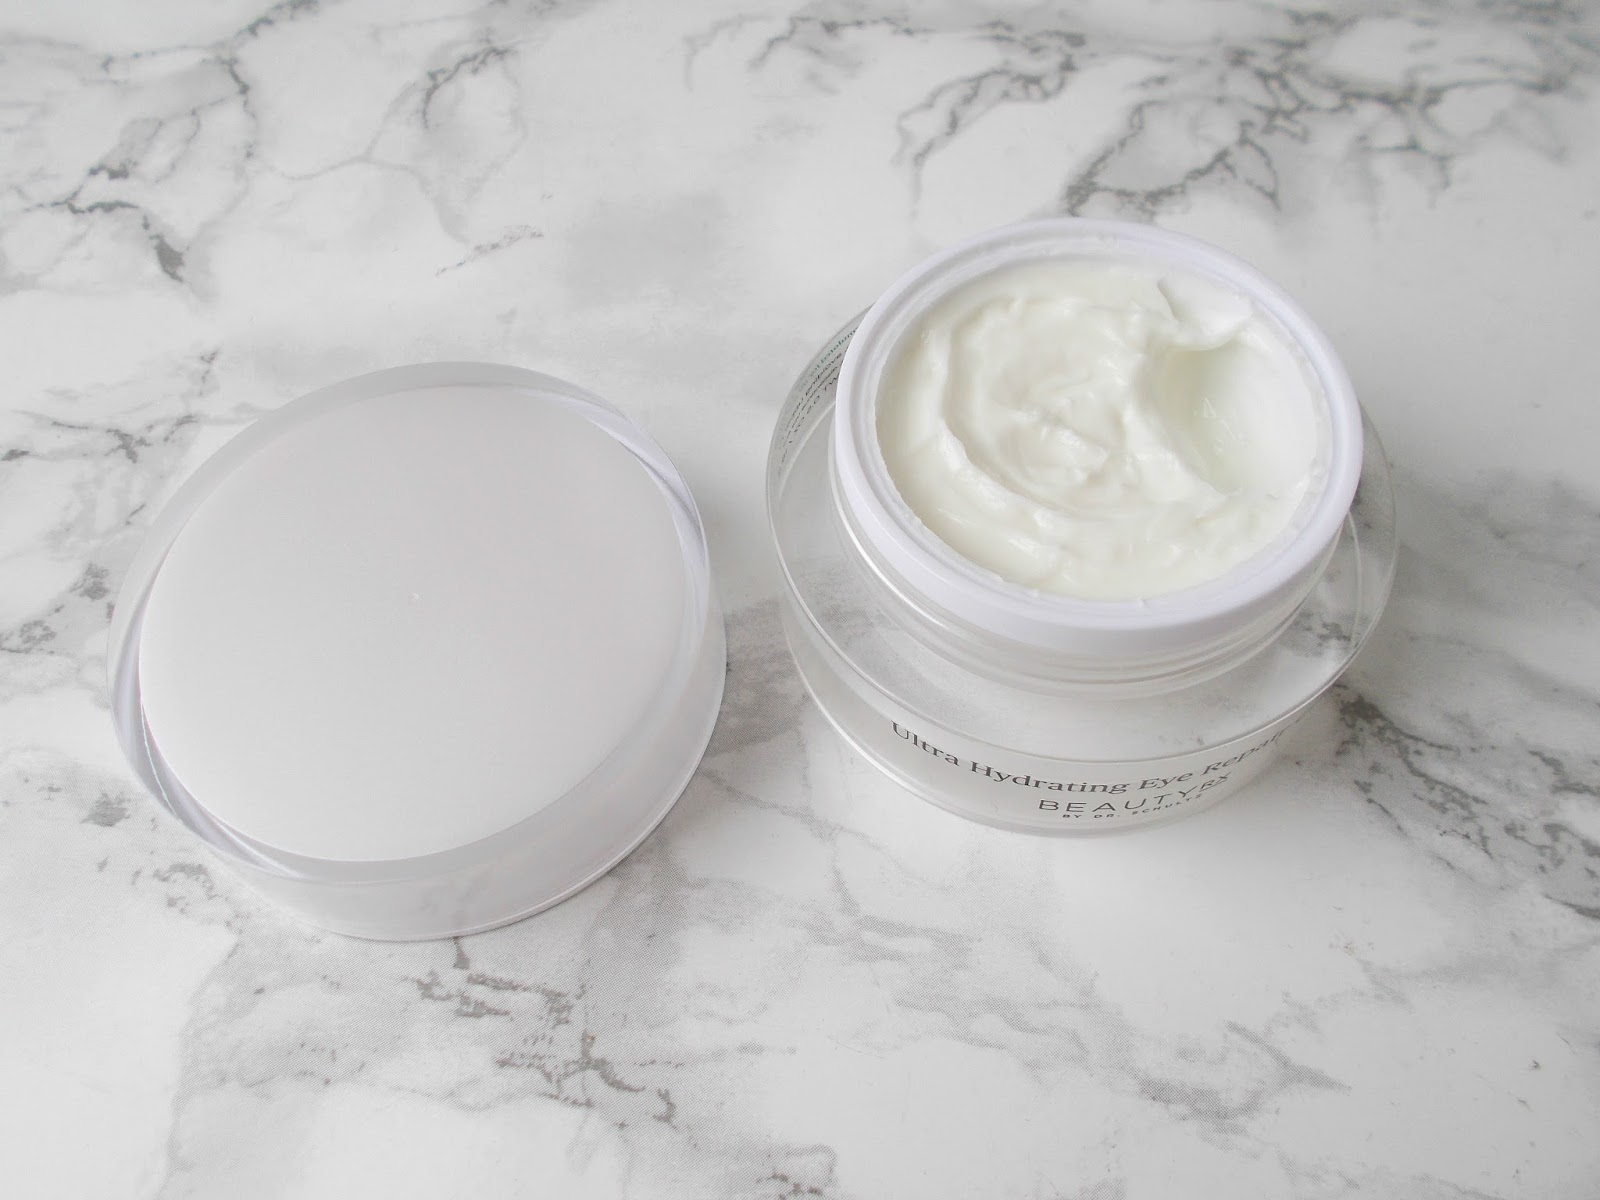 BeautyRX by Dr. Schultz skincare ultra hydrating eye repair cream review